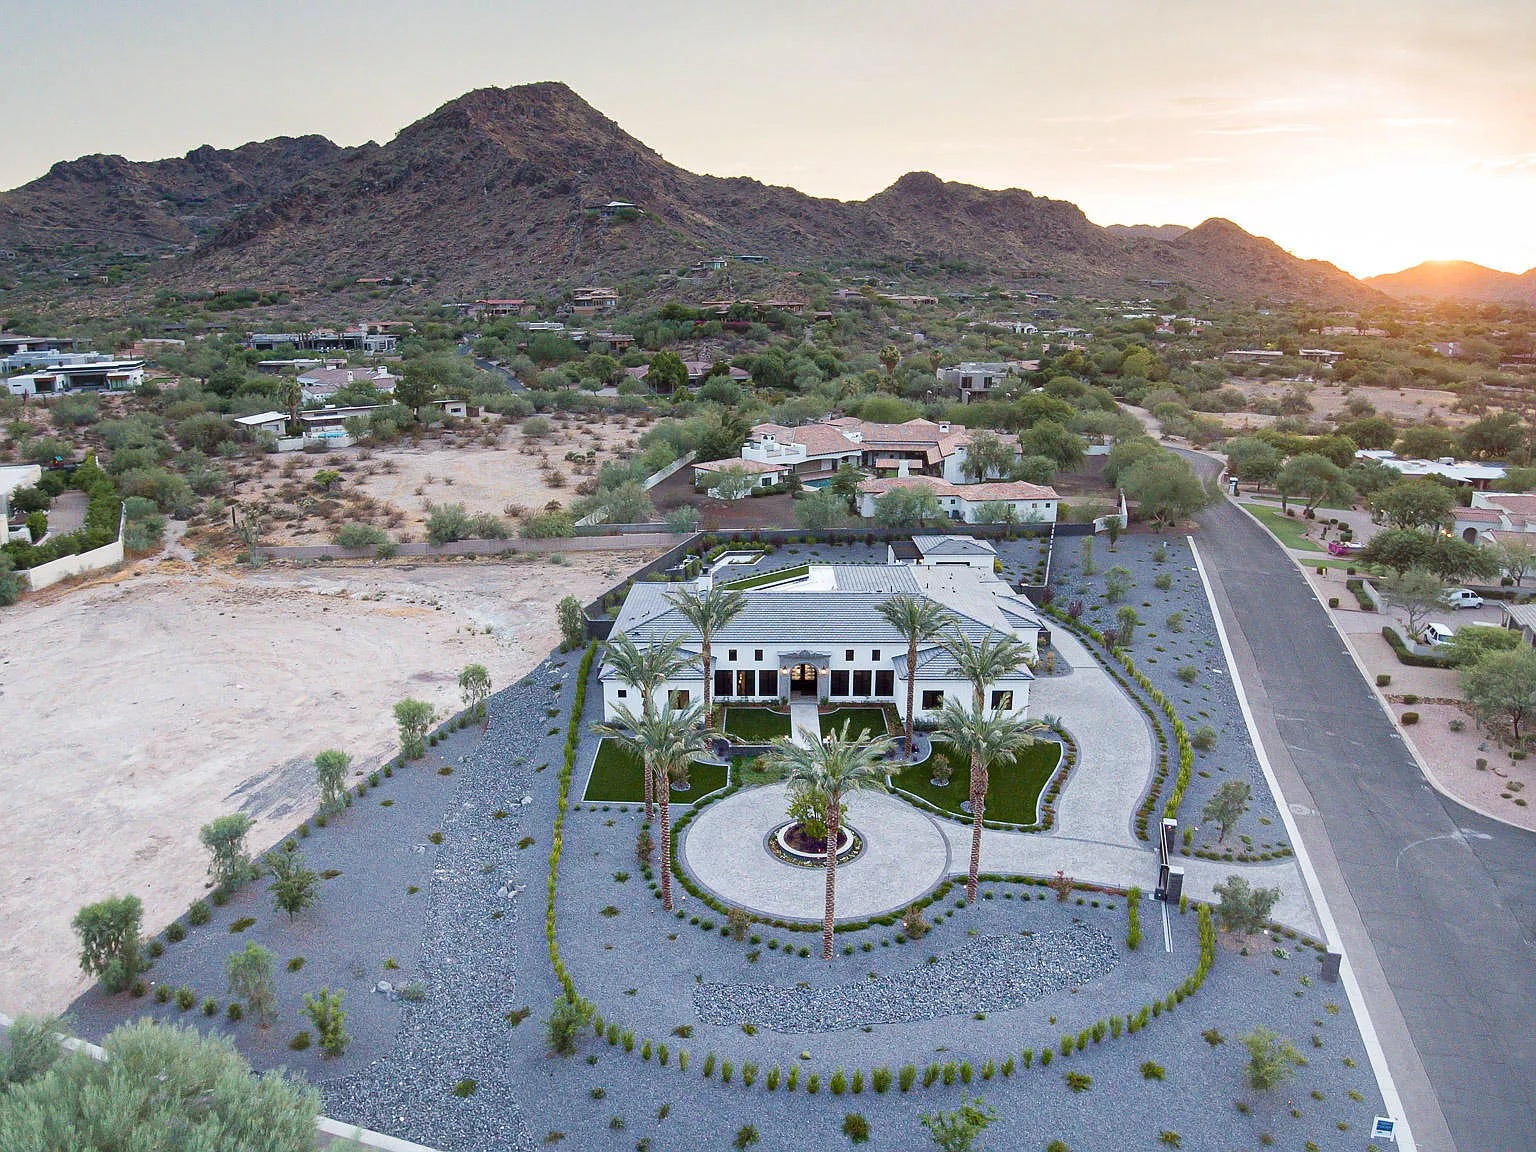 7970 N Ironwood Dr, Paradise Valley, AZ 85253 - $6,000,000 home for sale, house images, photos and pics gallery